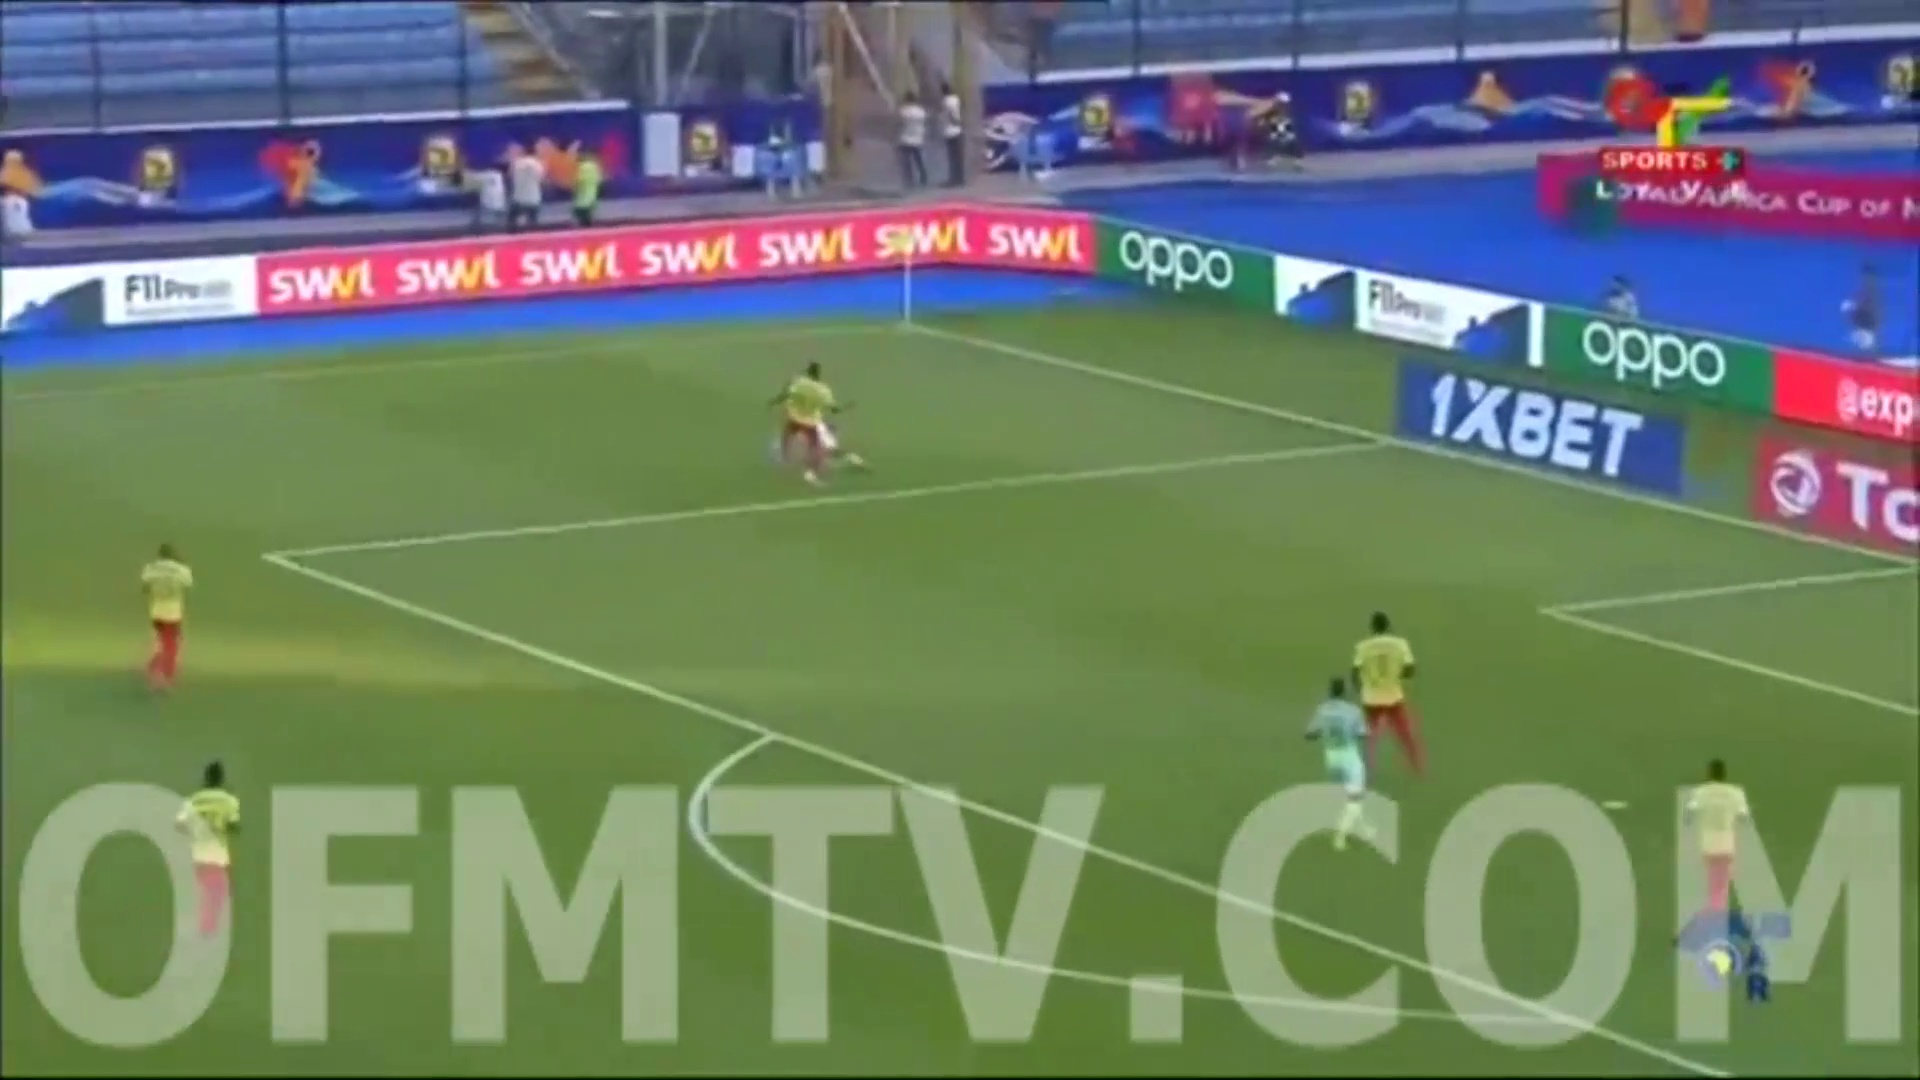 Nigeria vs Cameroon (3 – 2) – Full Highlights and Goals, This was a battle of soccer at AFCON 2019 Egypt.